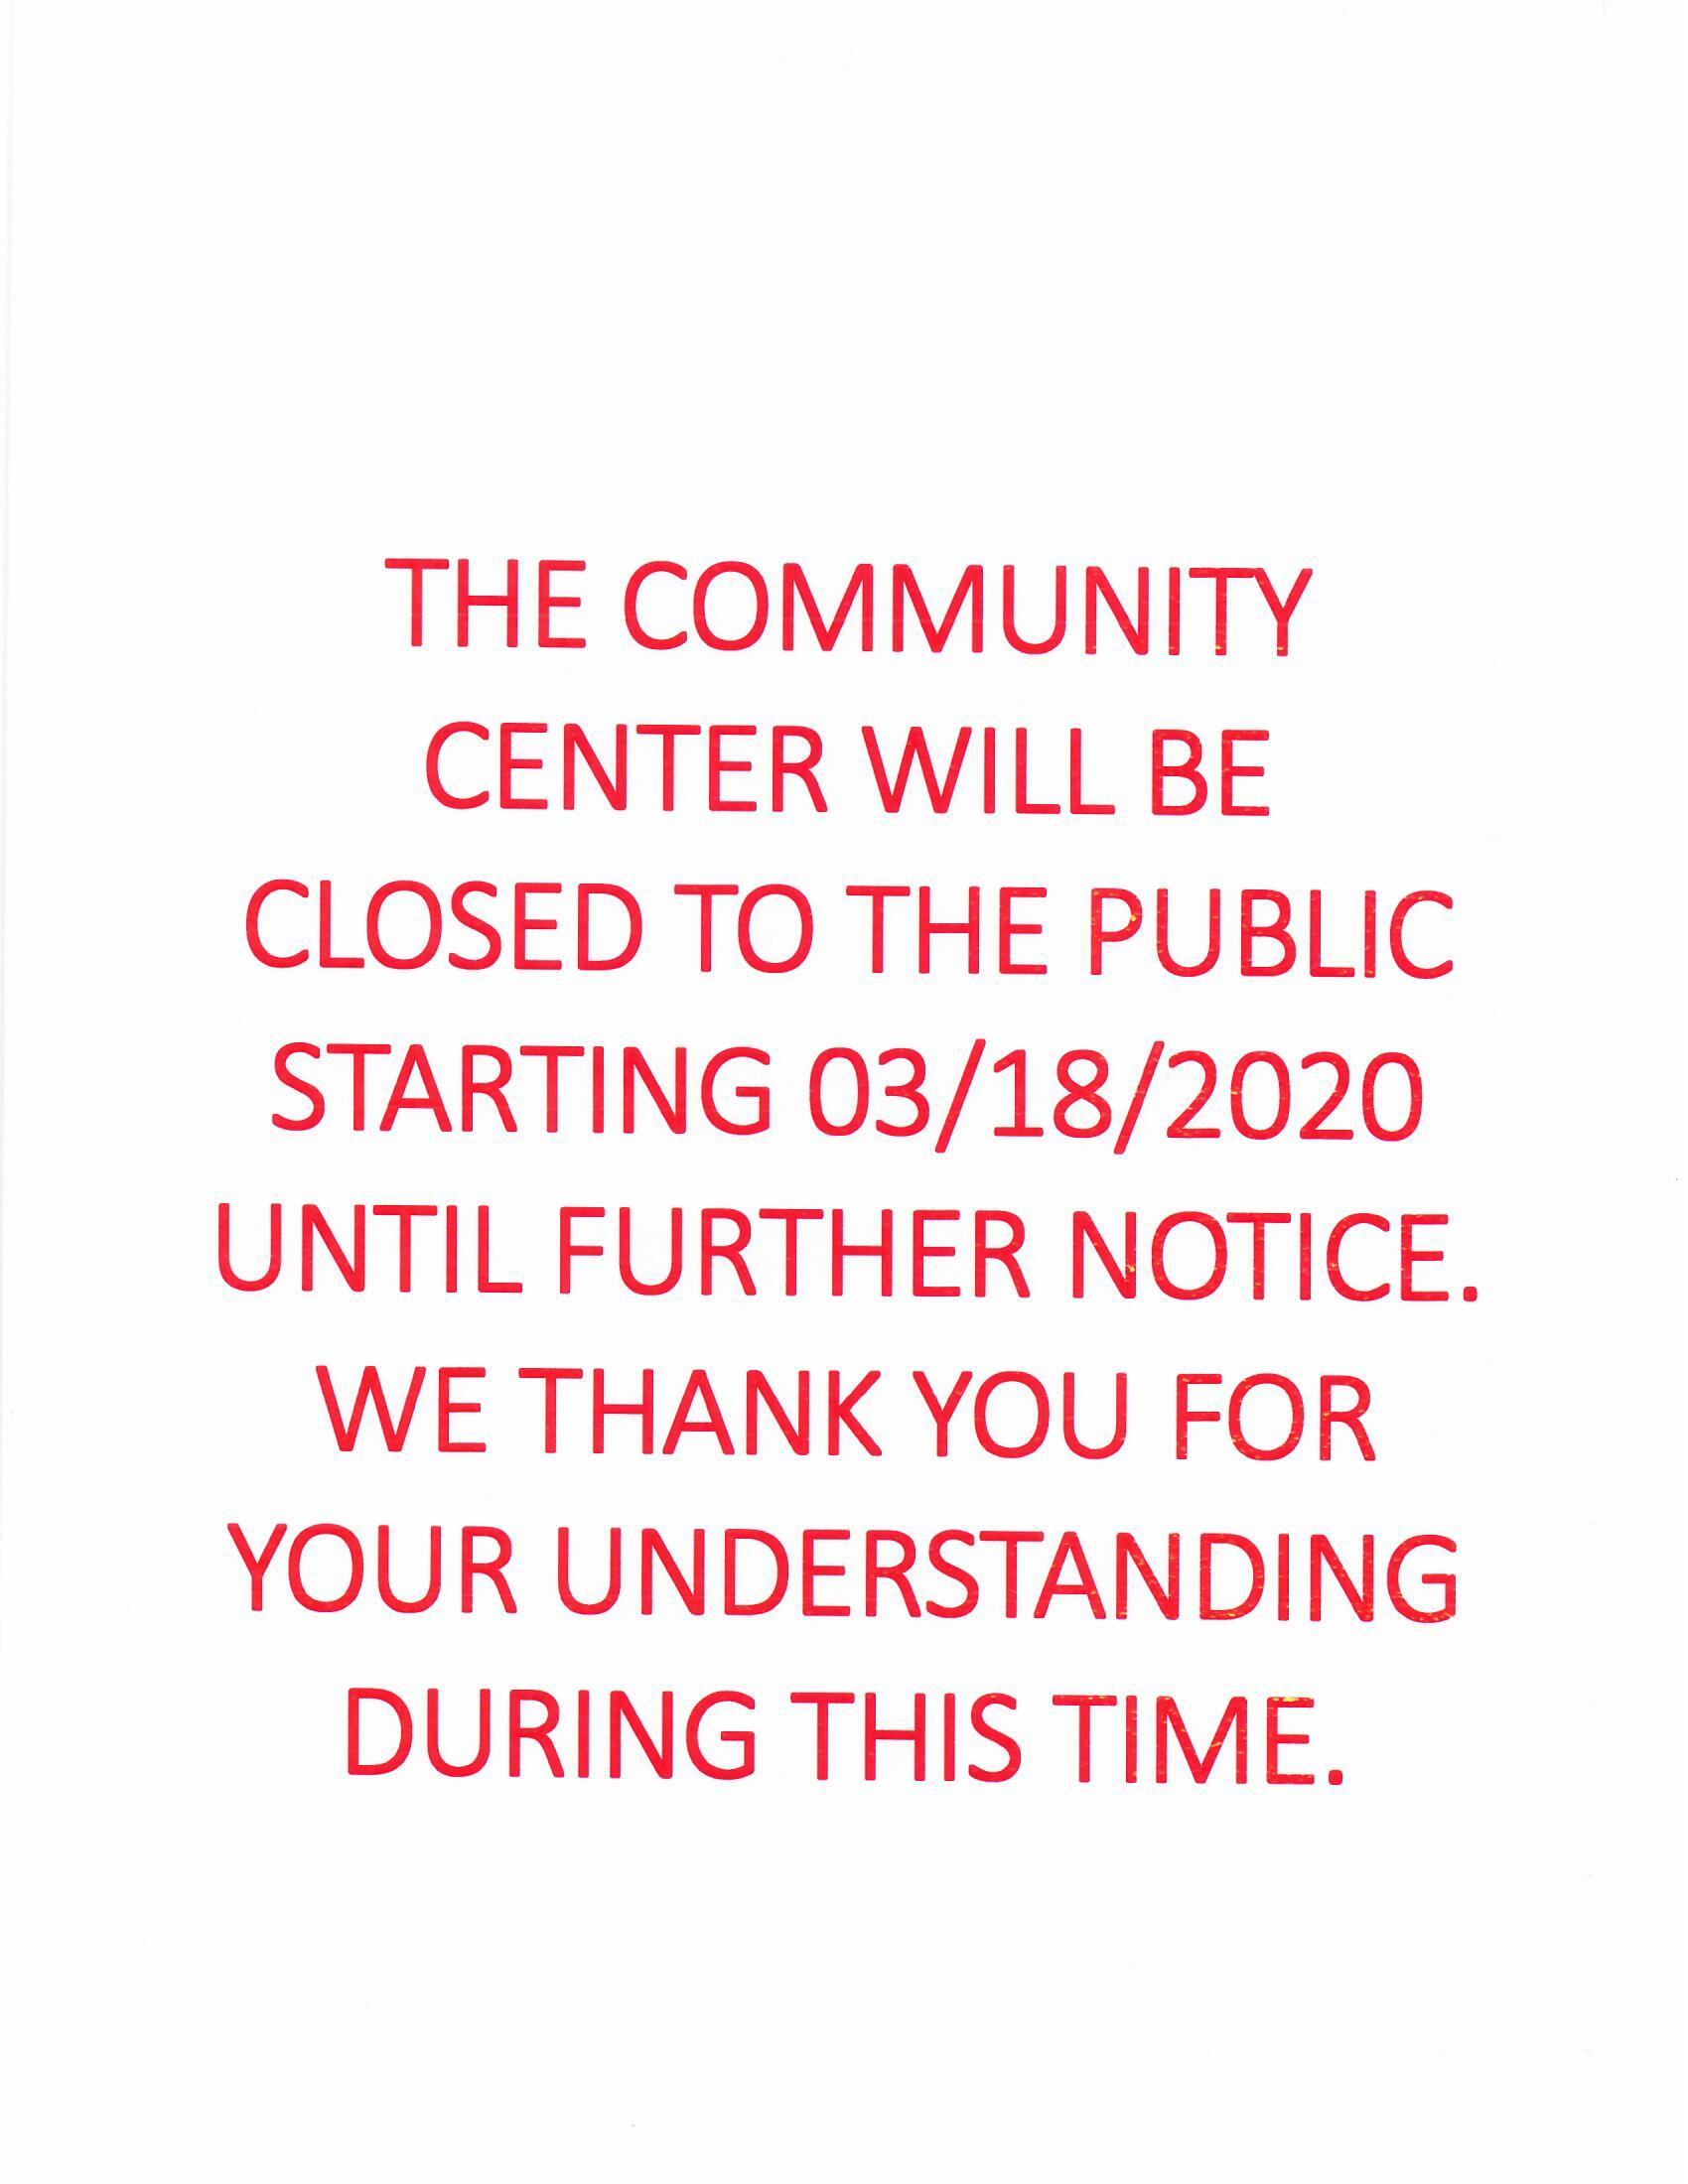 Virus closure community Center March, 18, 2020